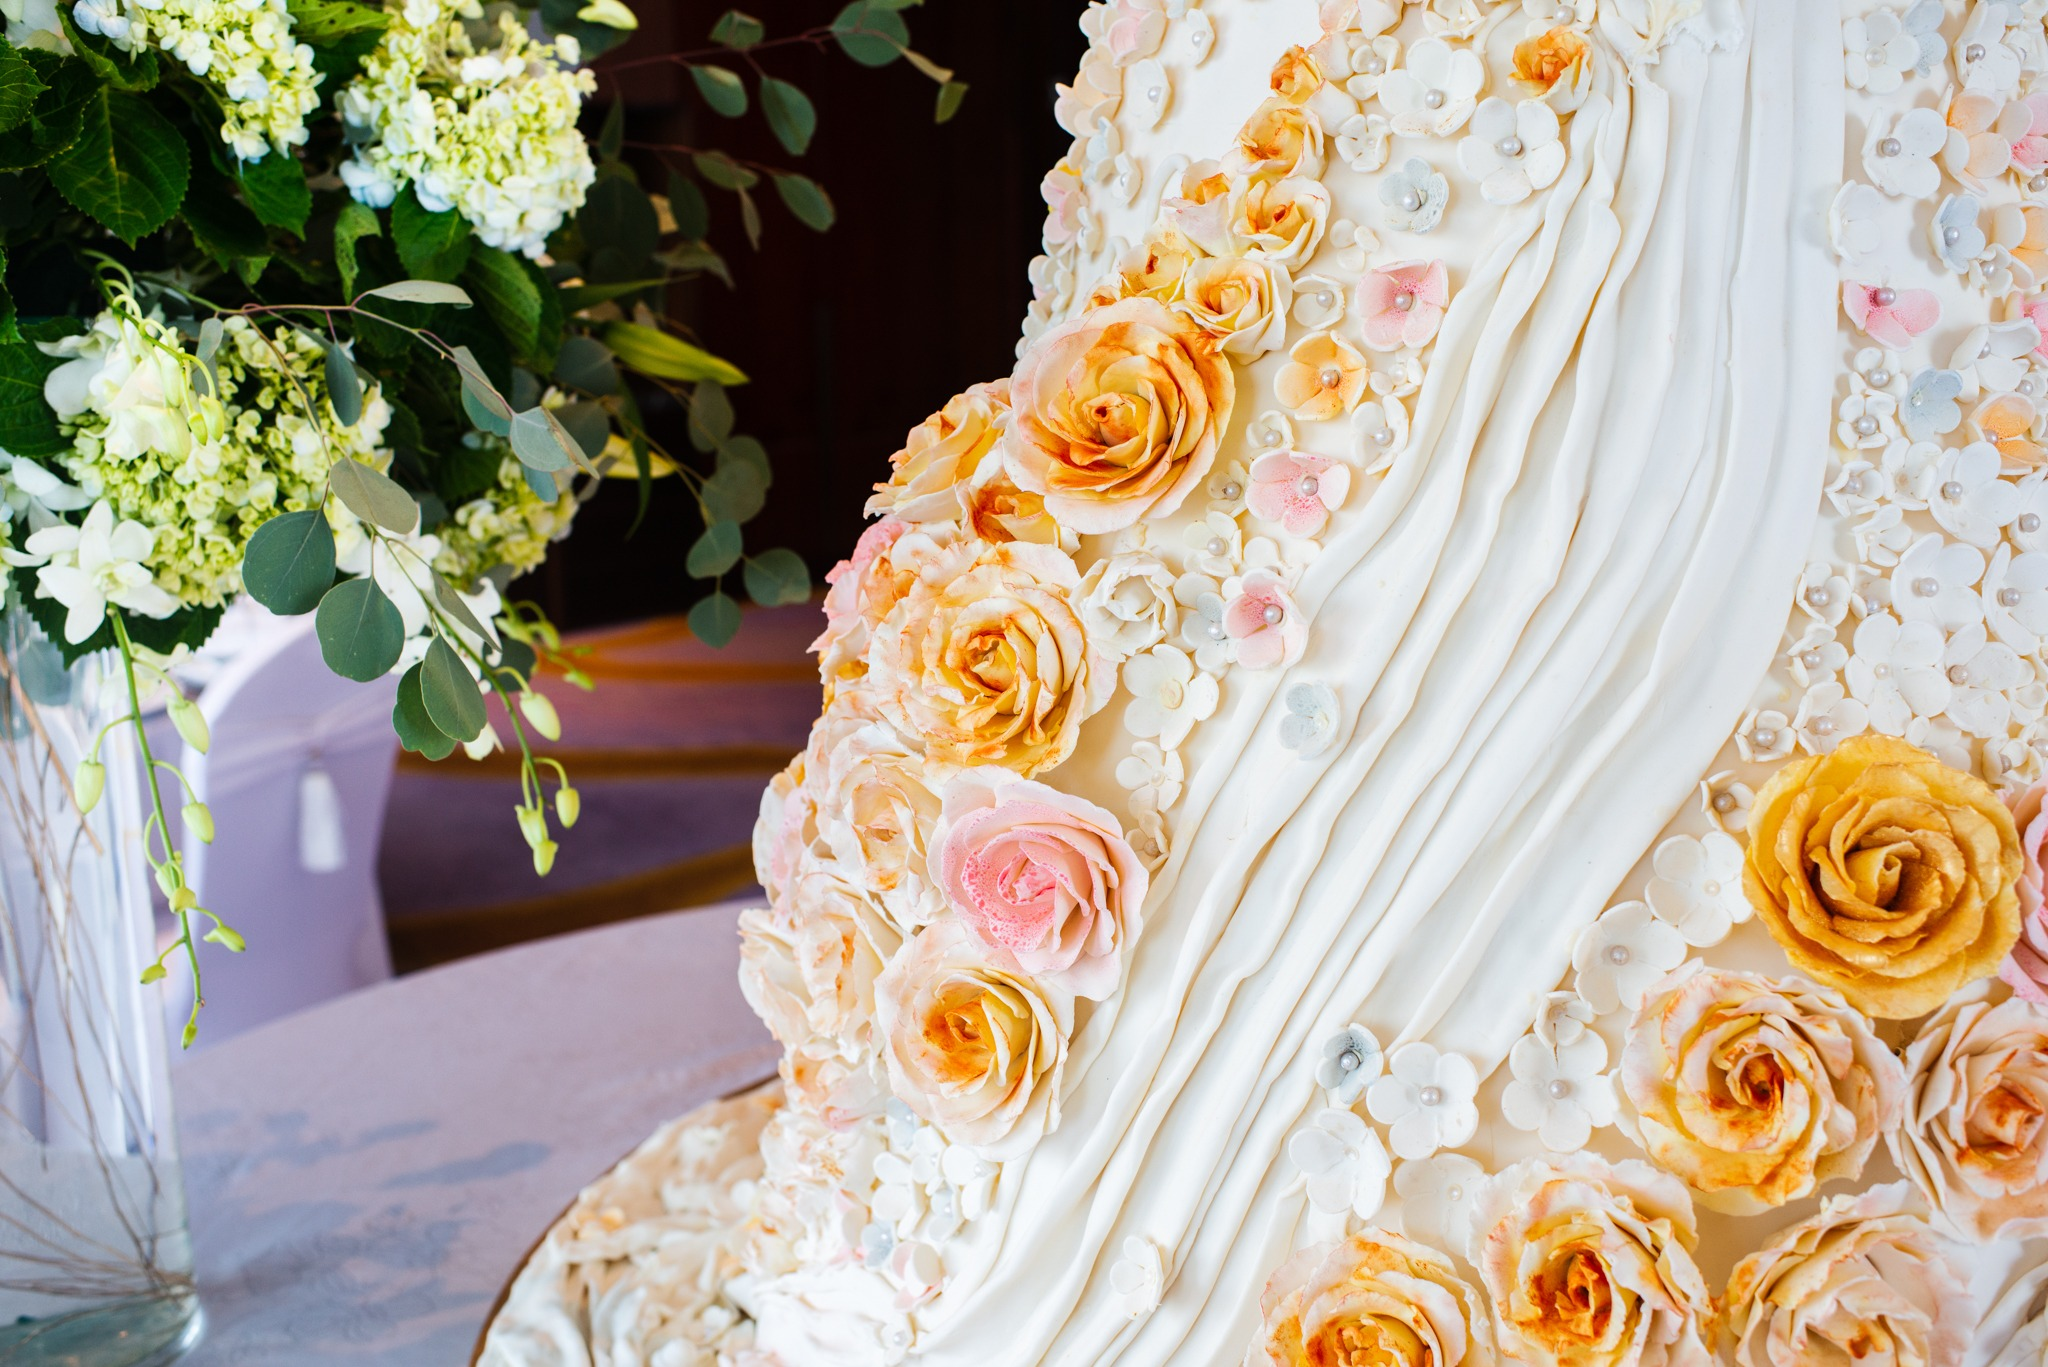 gorgeous wedding cake at luxury hanoi hotel